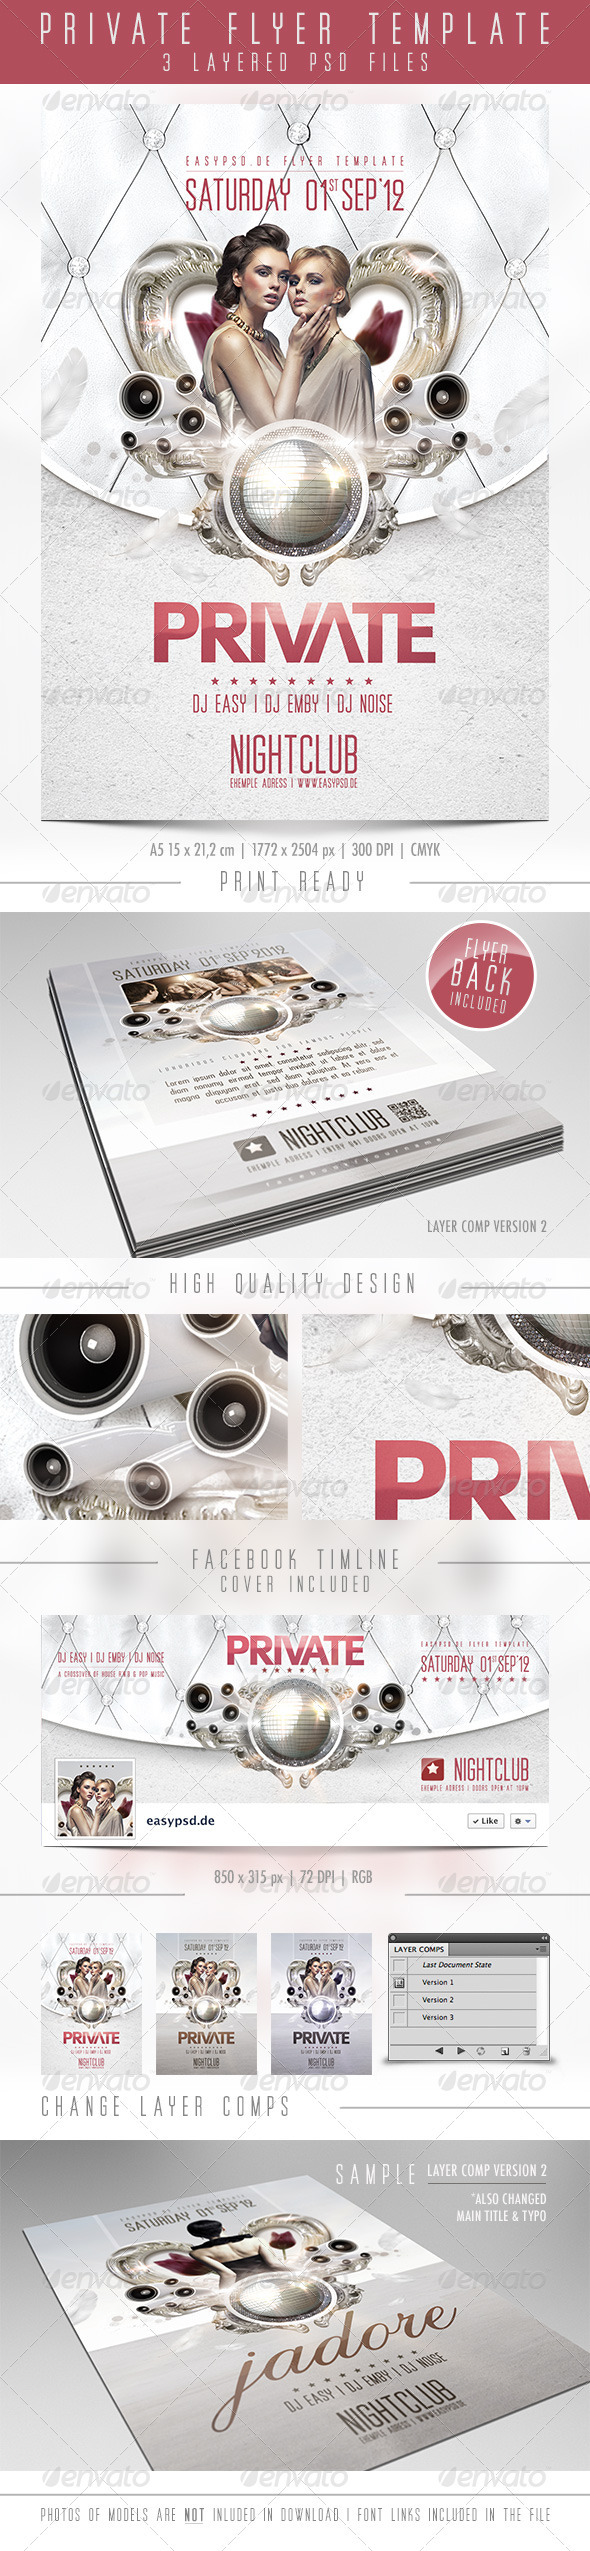 GraphicRiver Private Flyer Template 2633933